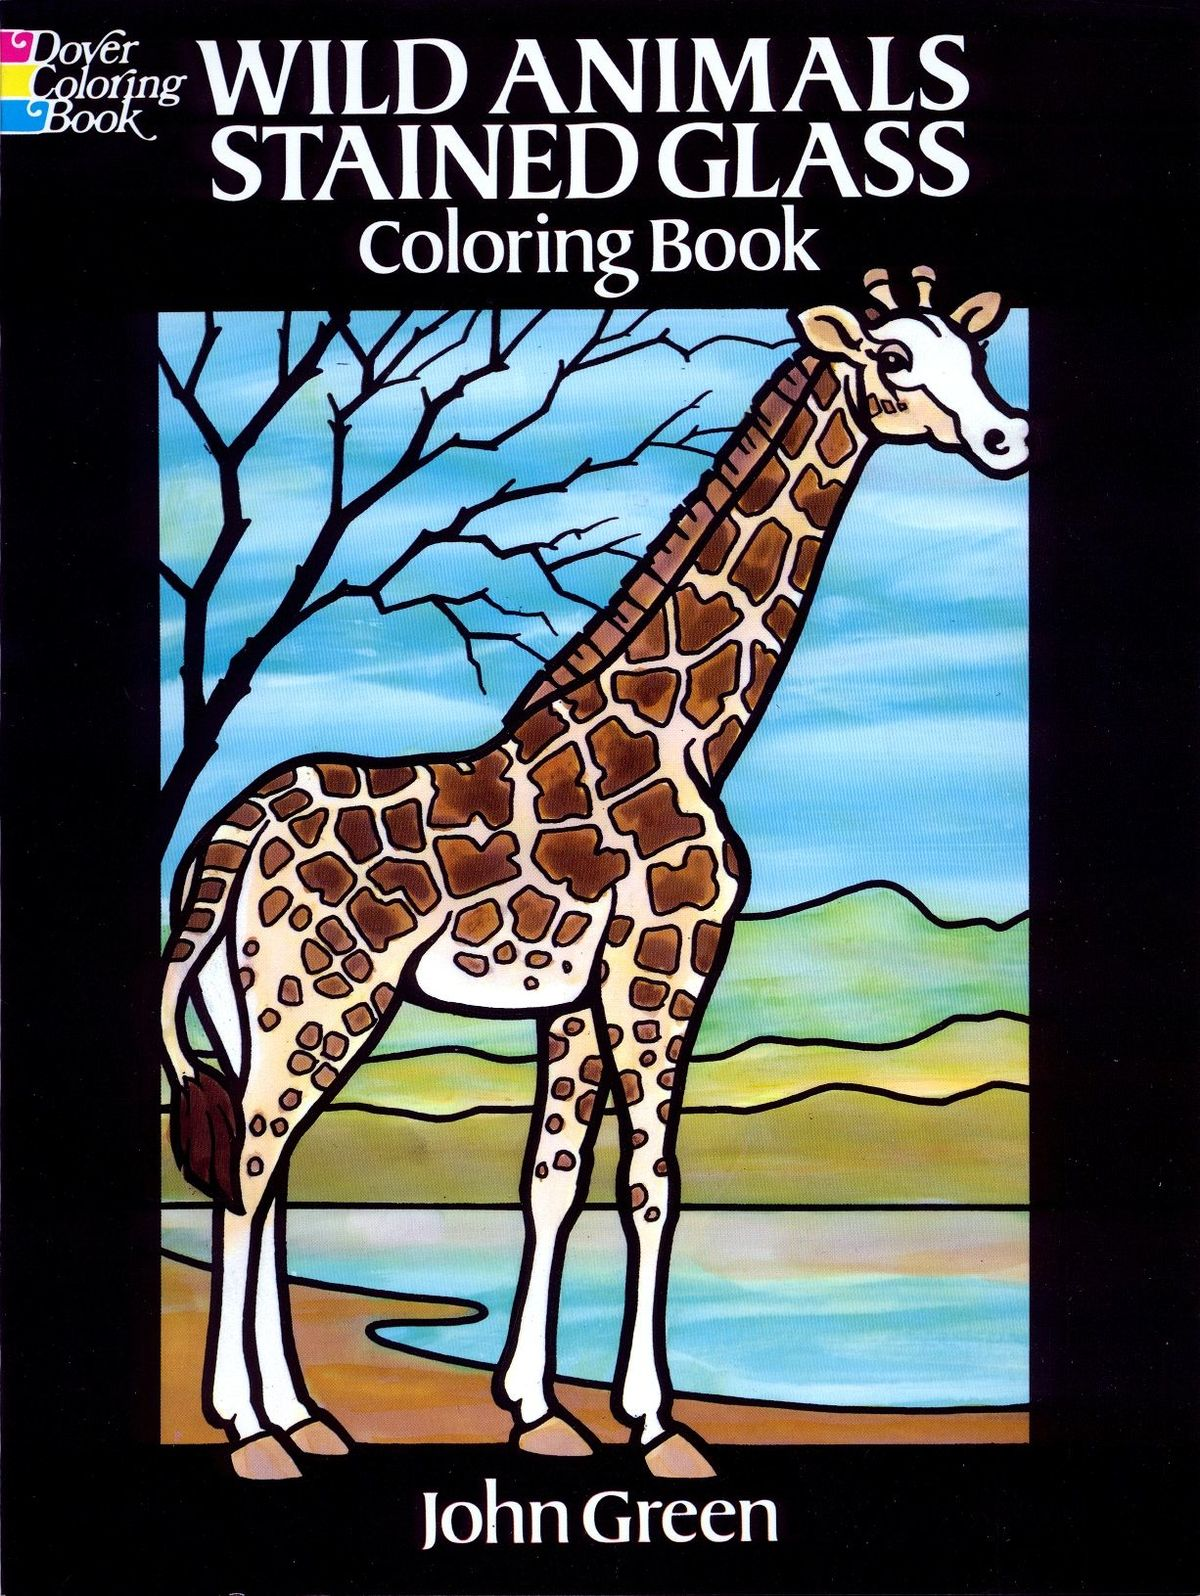 Dover - Wild Animals Stained Glass Coloring Book